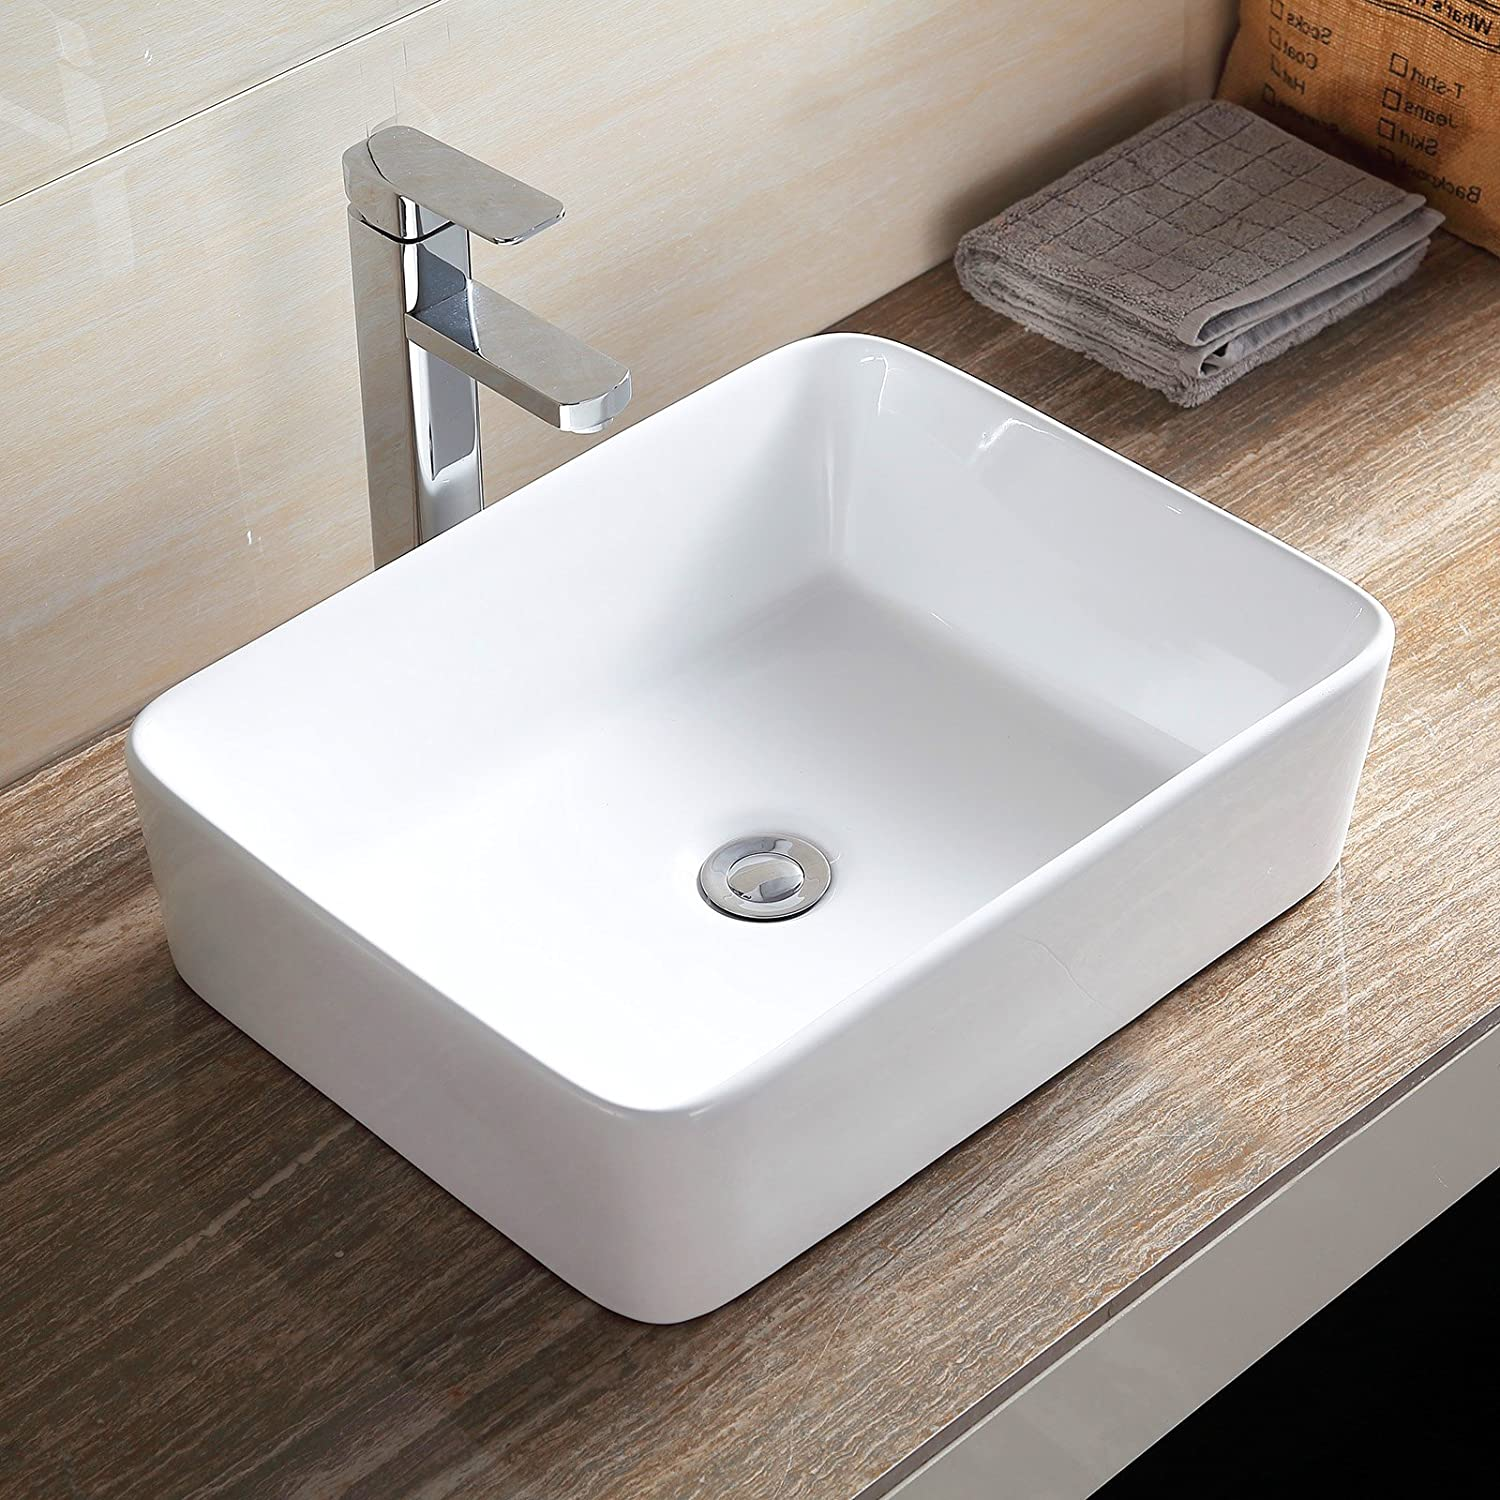 Mecor Ceramic Bathroom Vessel Sink Porcelain Bowl Vanity Basin w Pop Up Drain